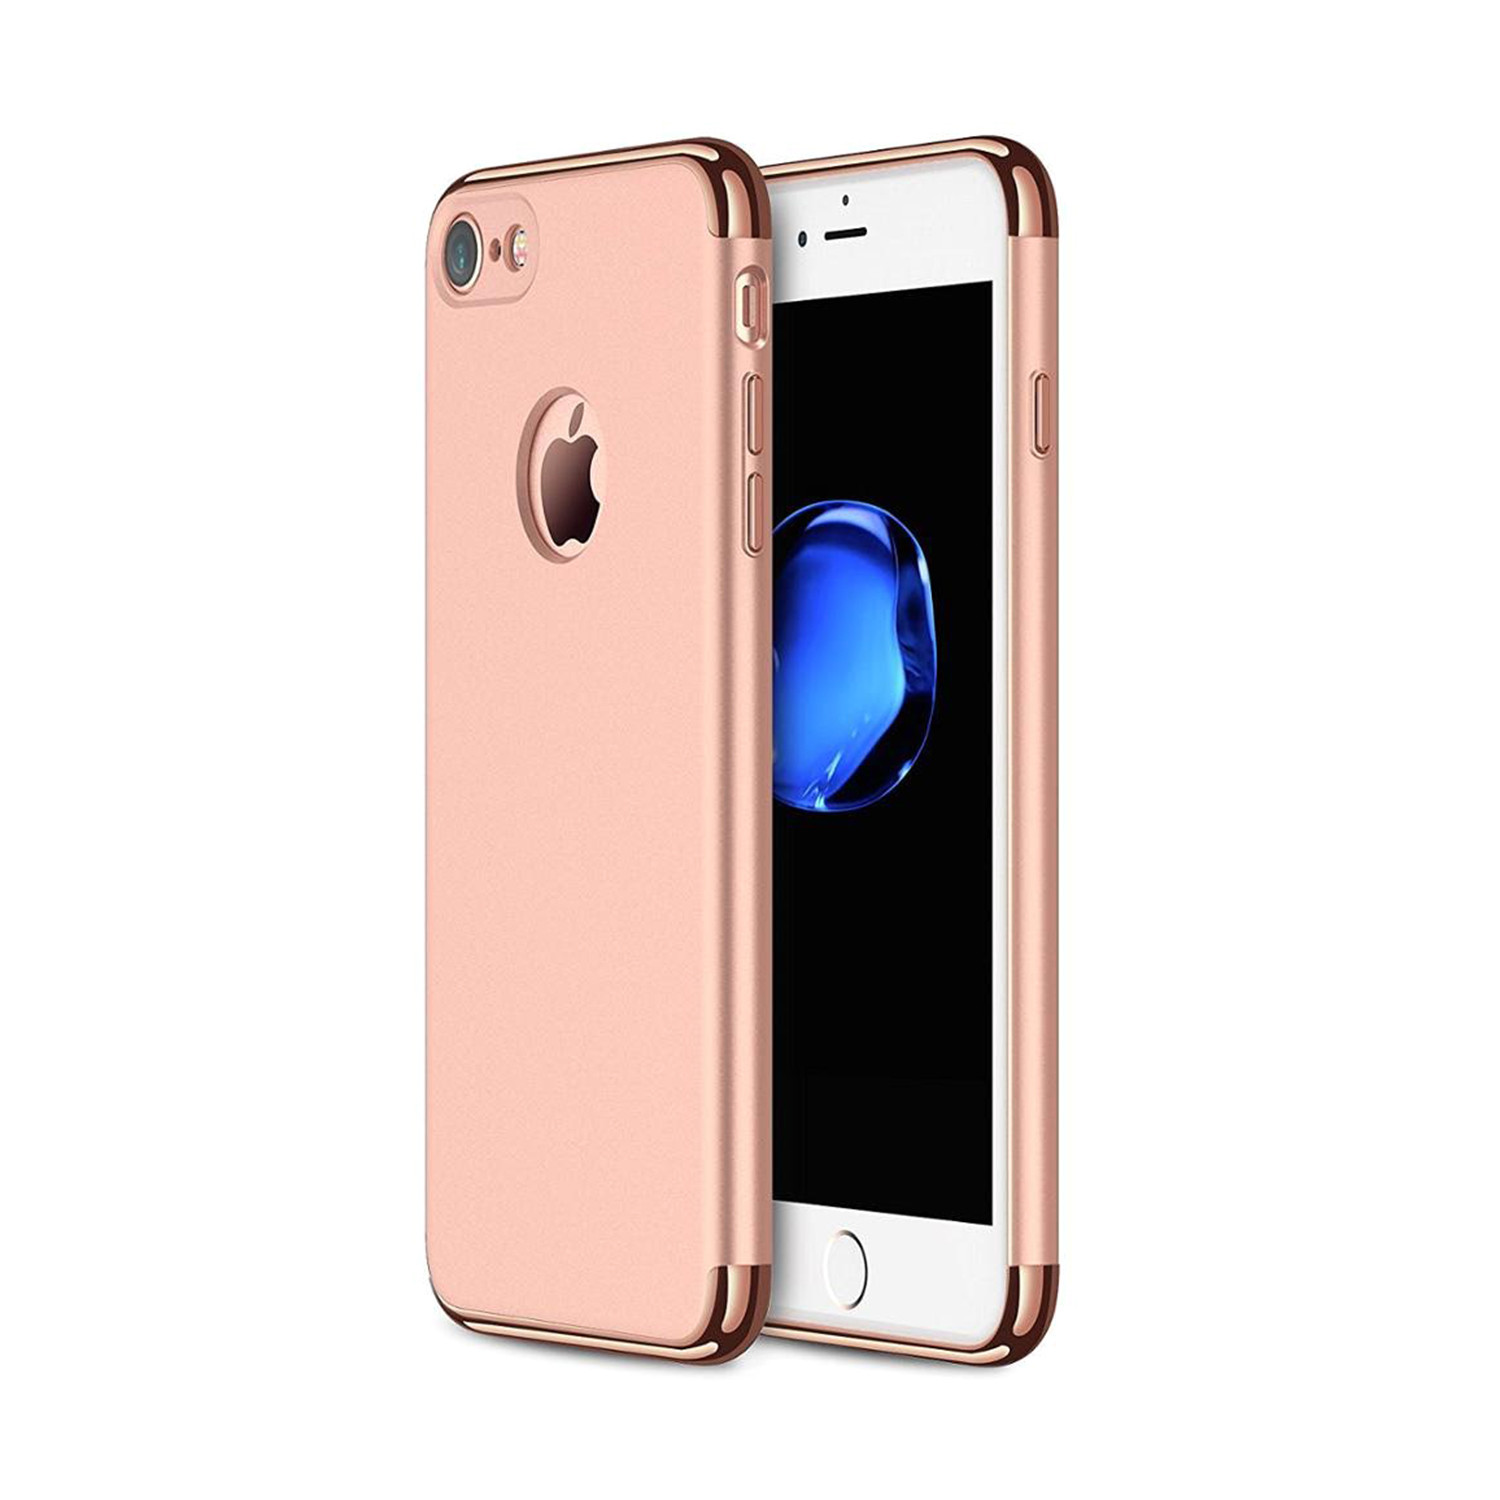 luxarmor case rose gold iphone 6 6s luxarmor touch of modern. Black Bedroom Furniture Sets. Home Design Ideas